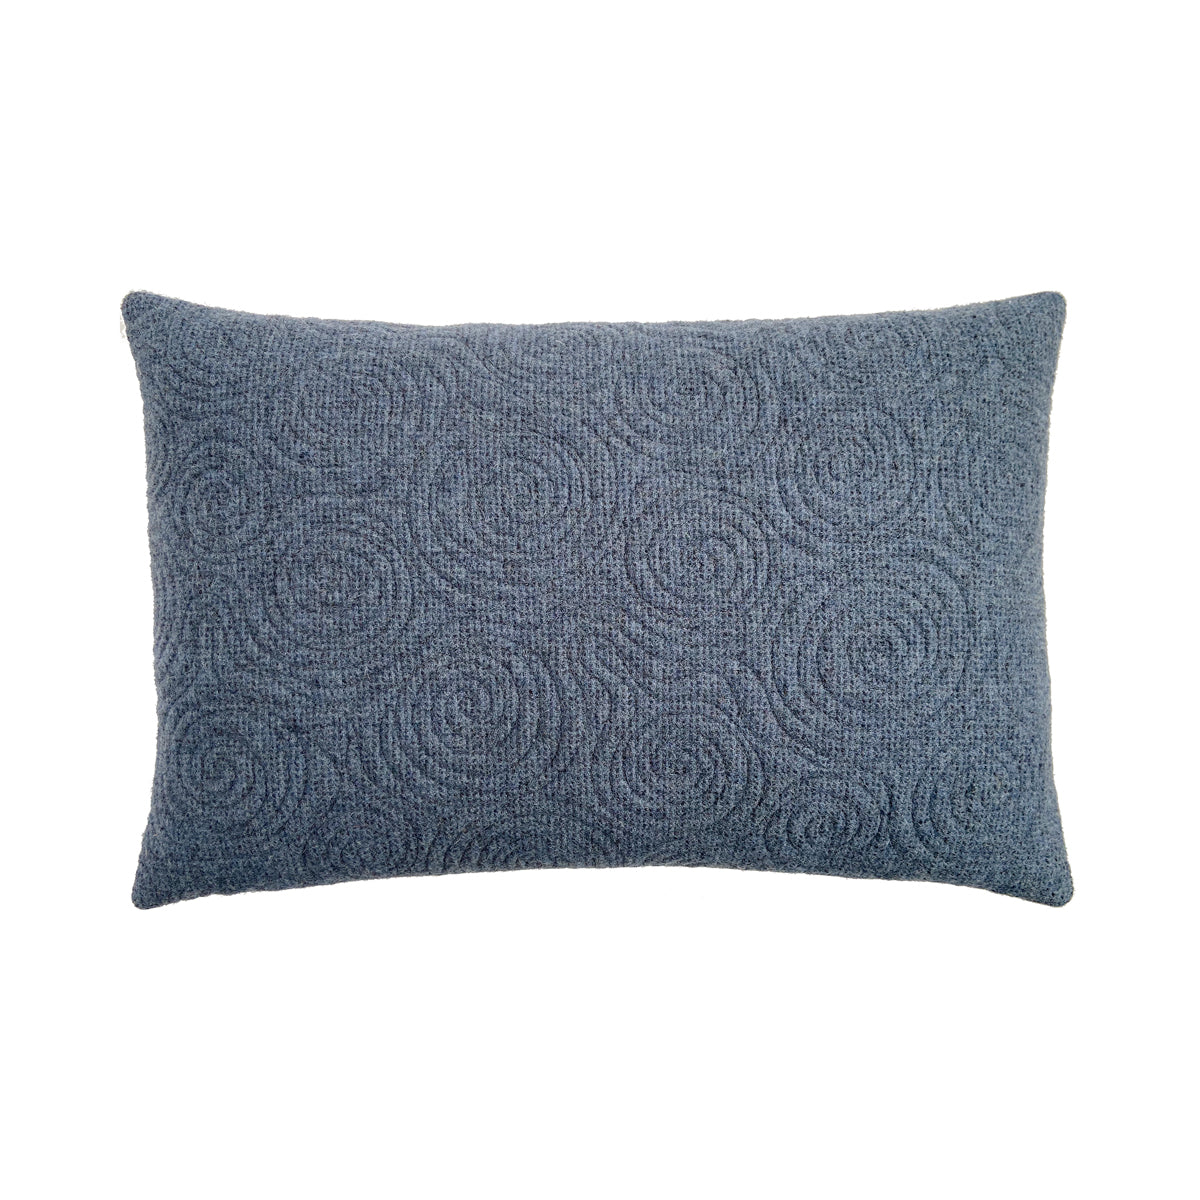 NE 41st Avenue Fancy Stitches Cushion • 12x18 B